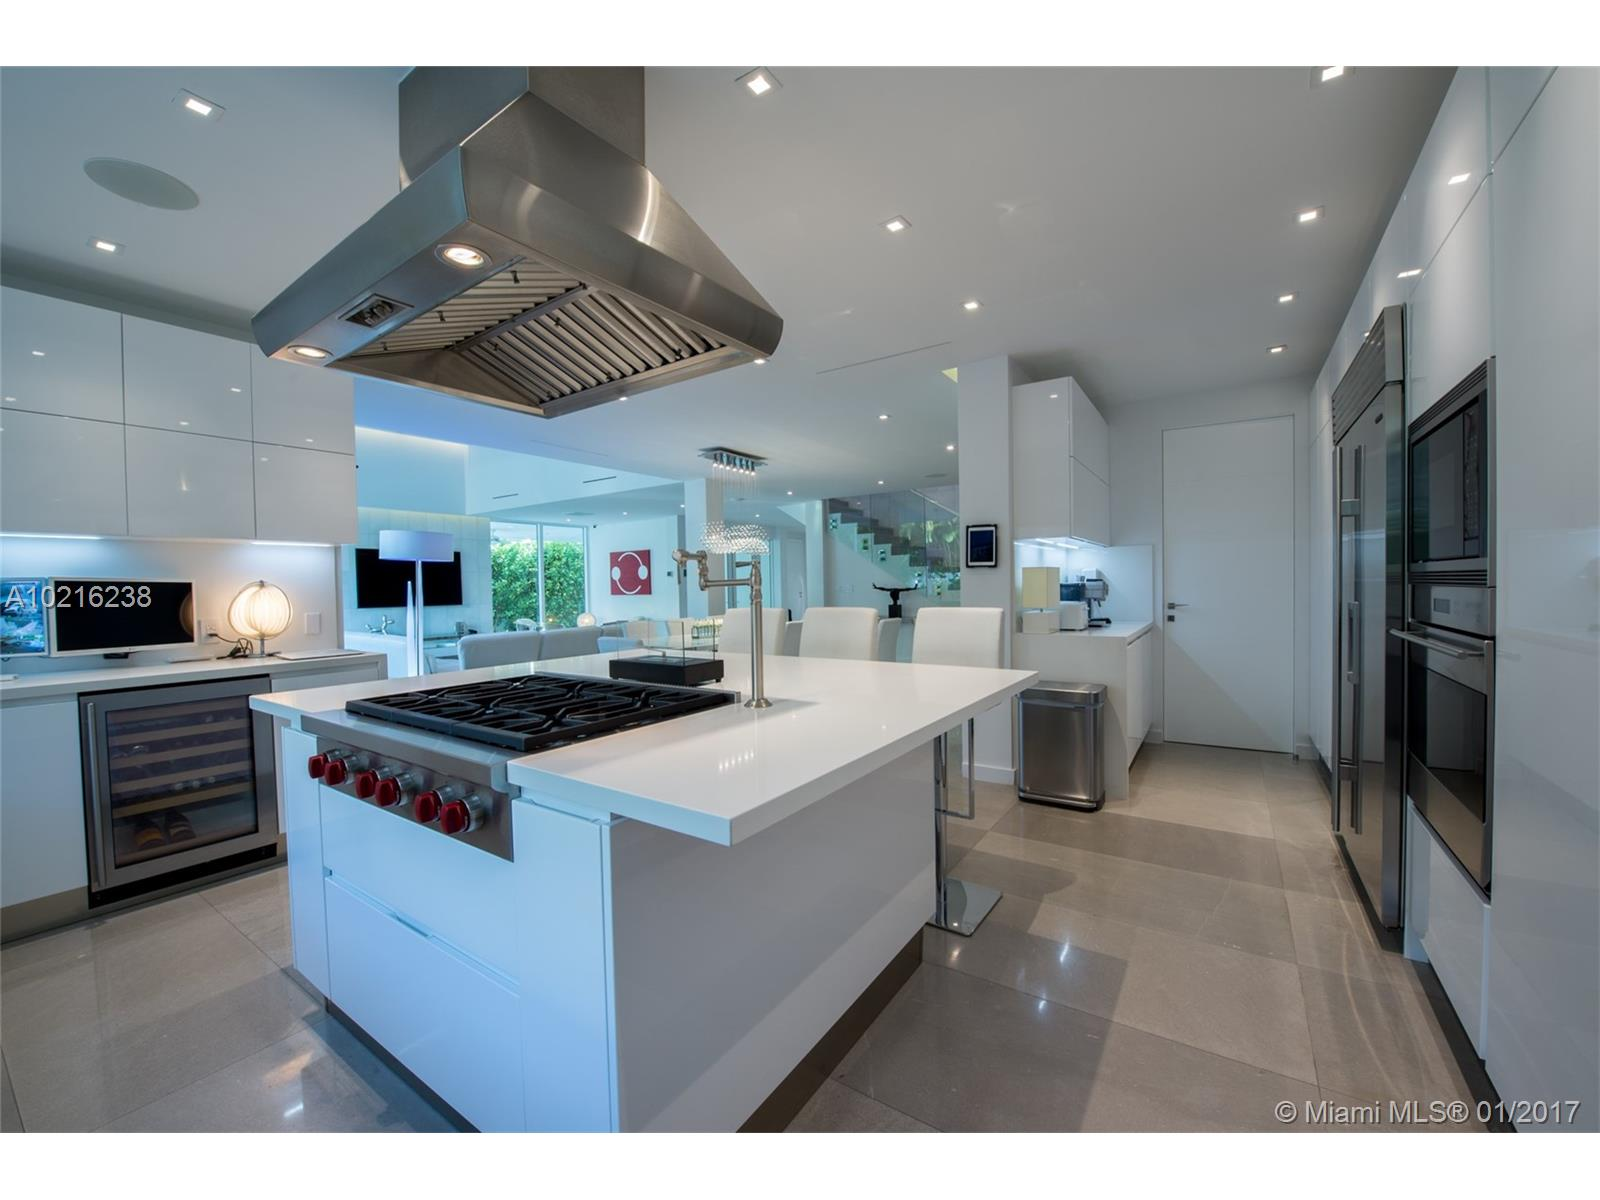 Cucina A Gas Wolf Real Estate Bulldog Oscar Arellano S Coral Gables Realtor Coral